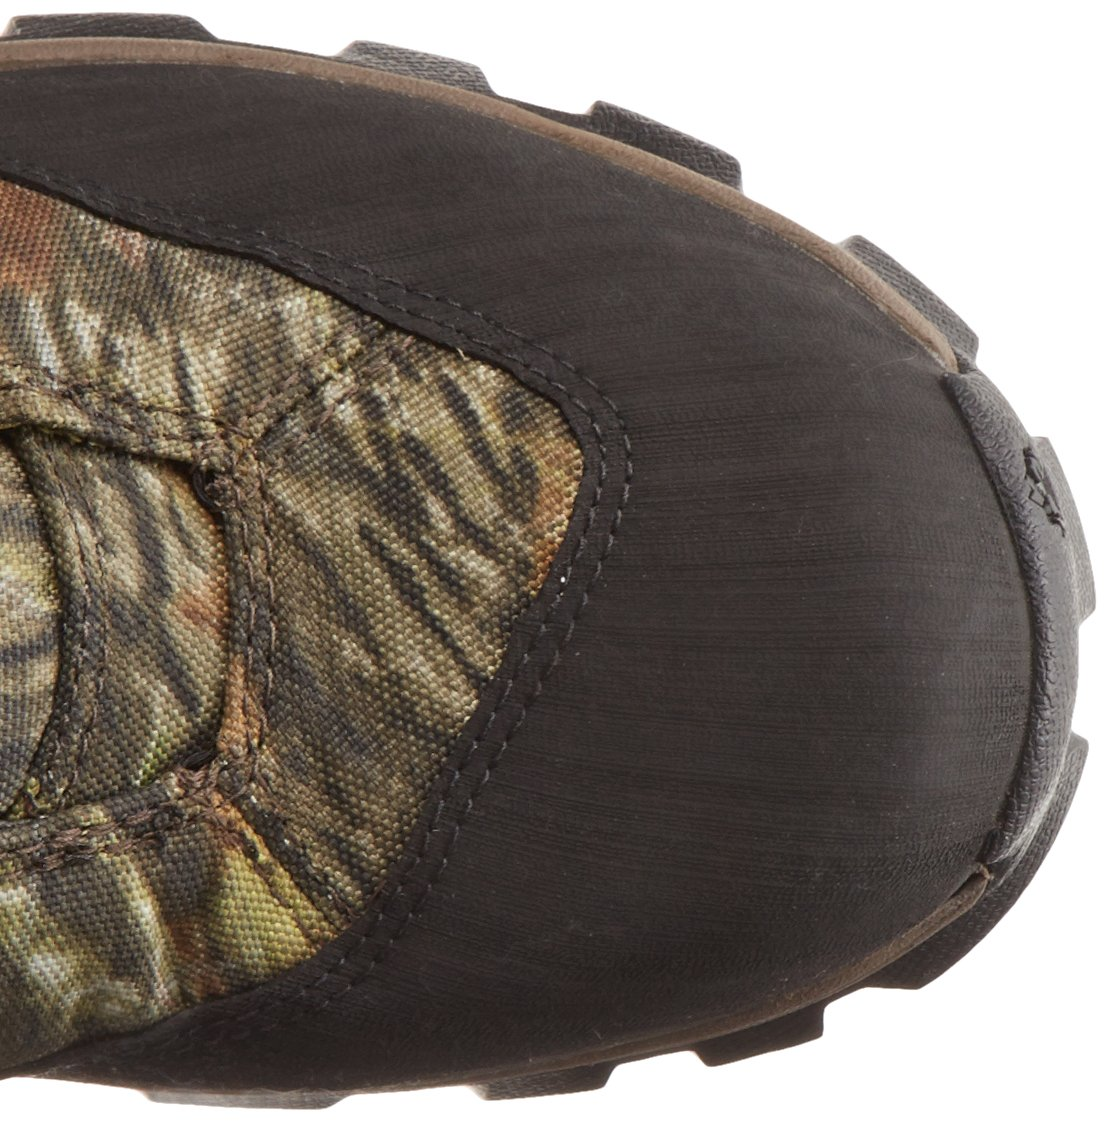 Rocky Men's Lynx Snake Boot Hunting Boot,Mobu,10 M US by Rocky (Image #7)